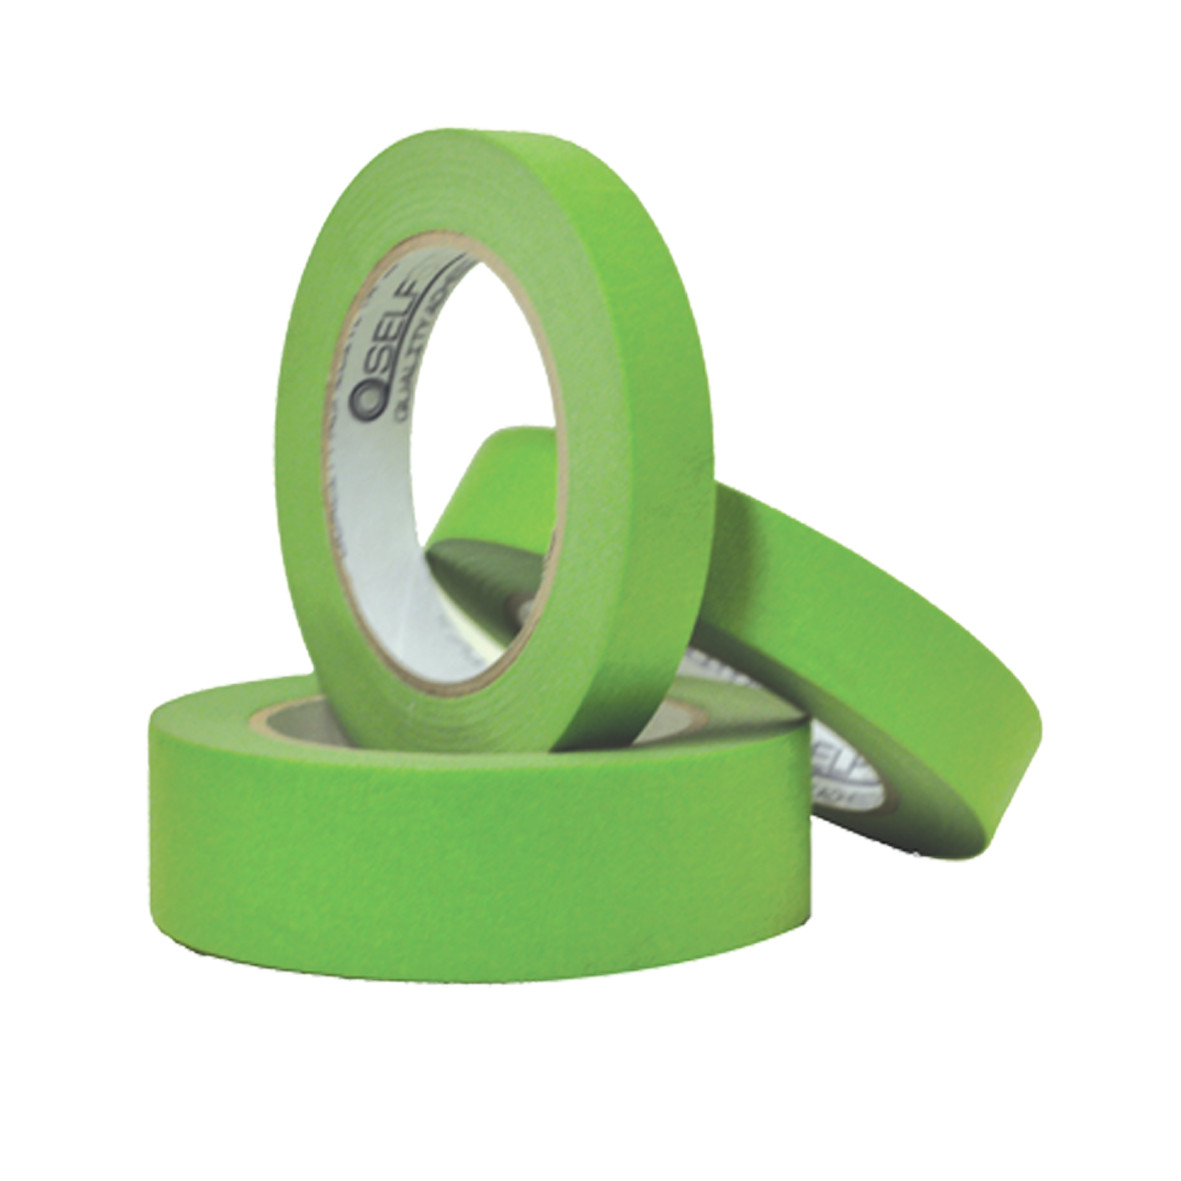 High tack 5 day exterior green masking tape for Exterior masking tape